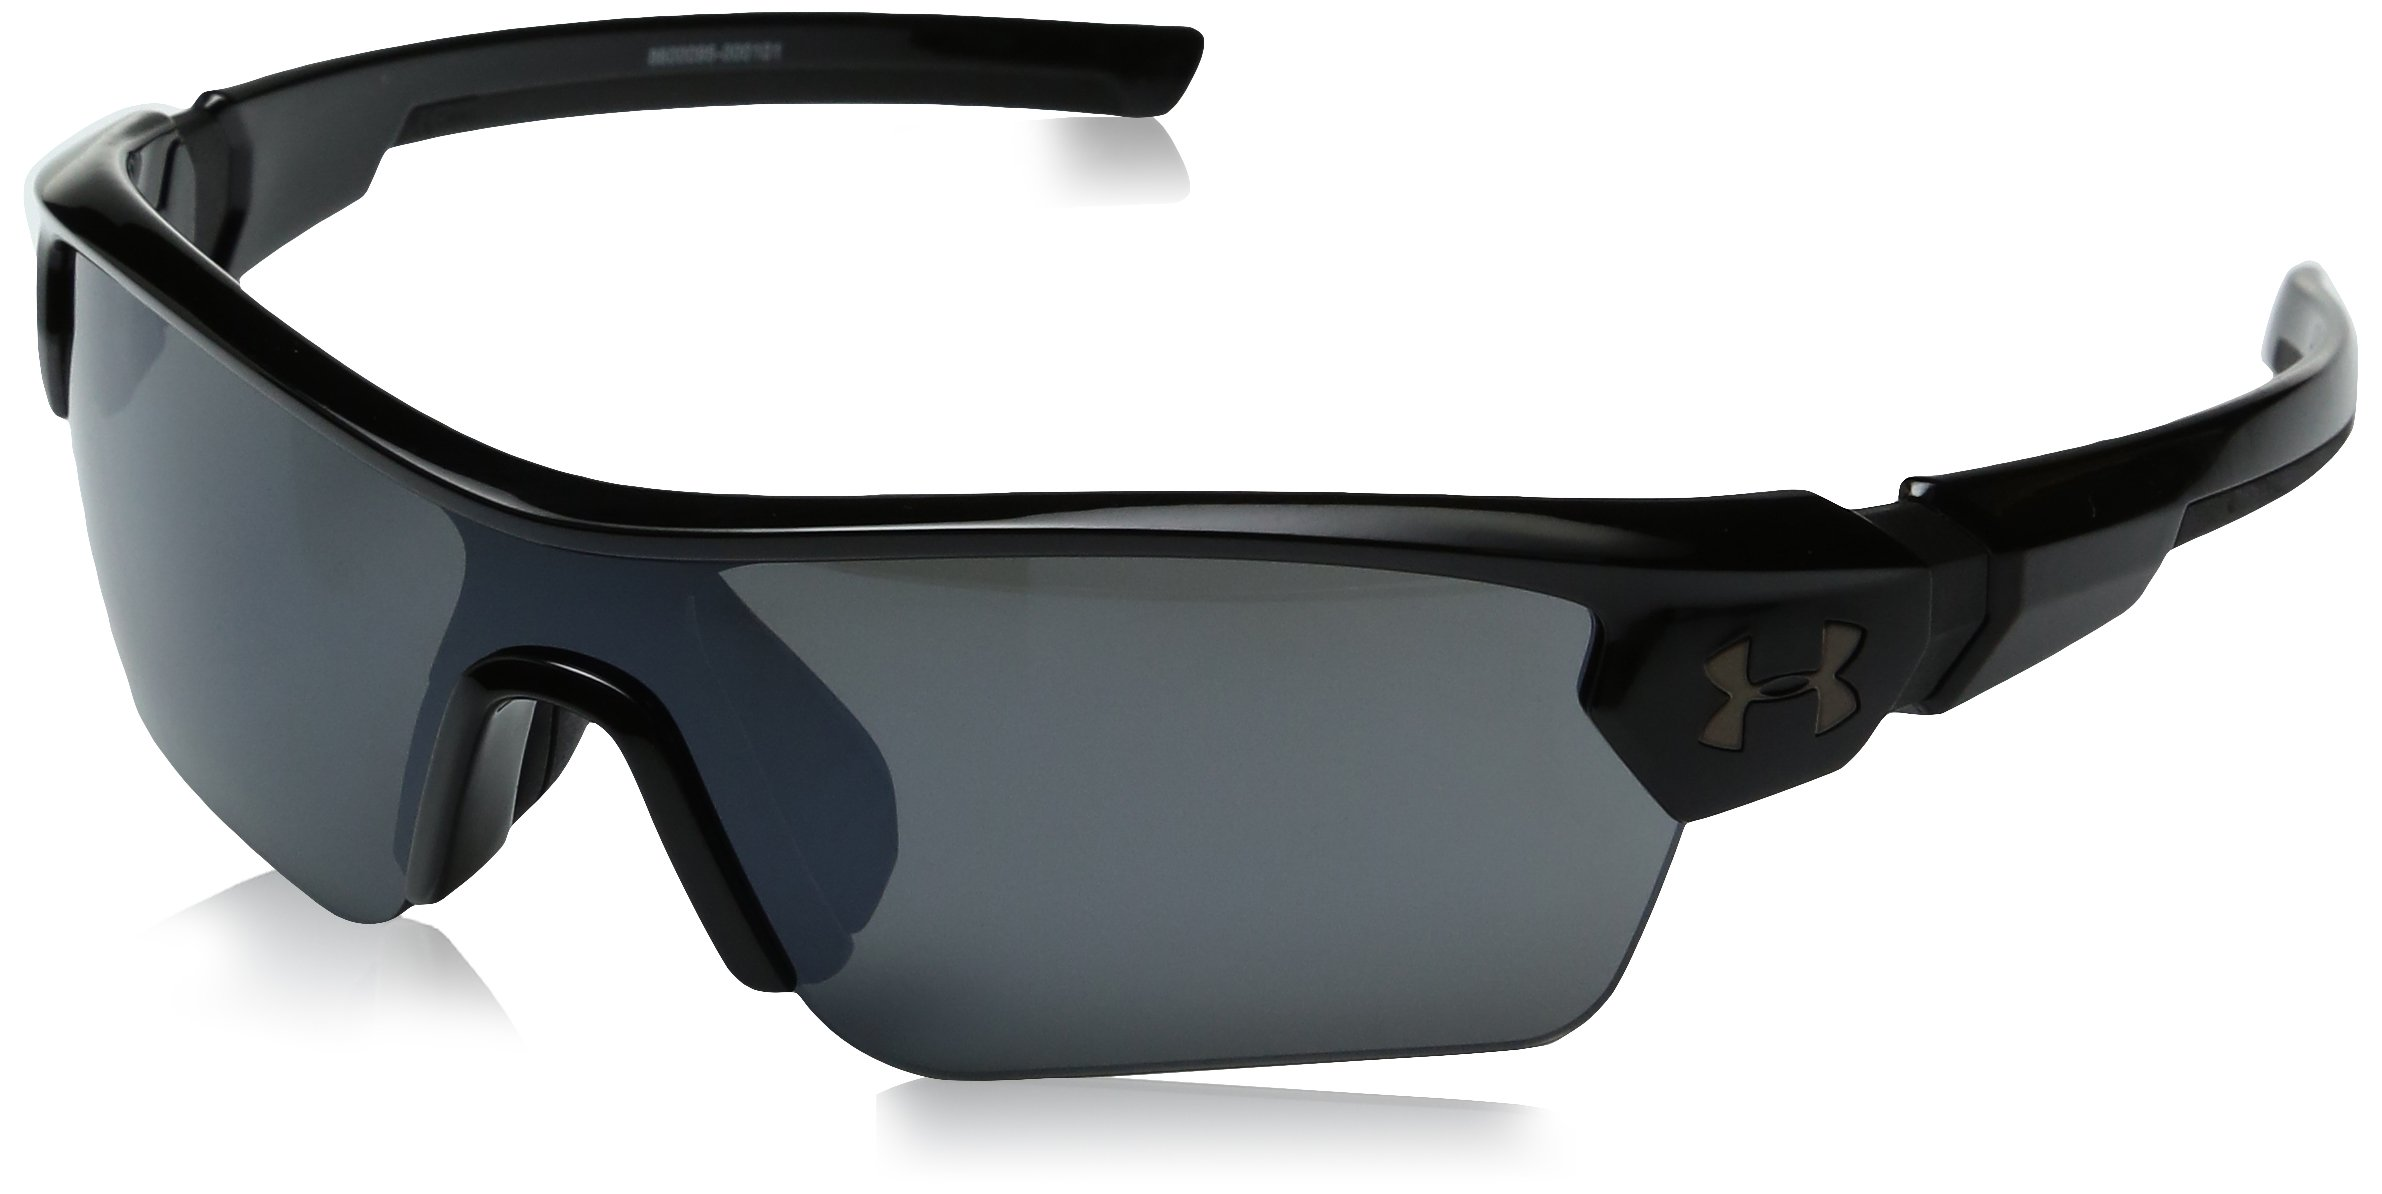 Under Armour Kids' Ua Menace Wrap Sunglasses, Black/Gray, 58 mm